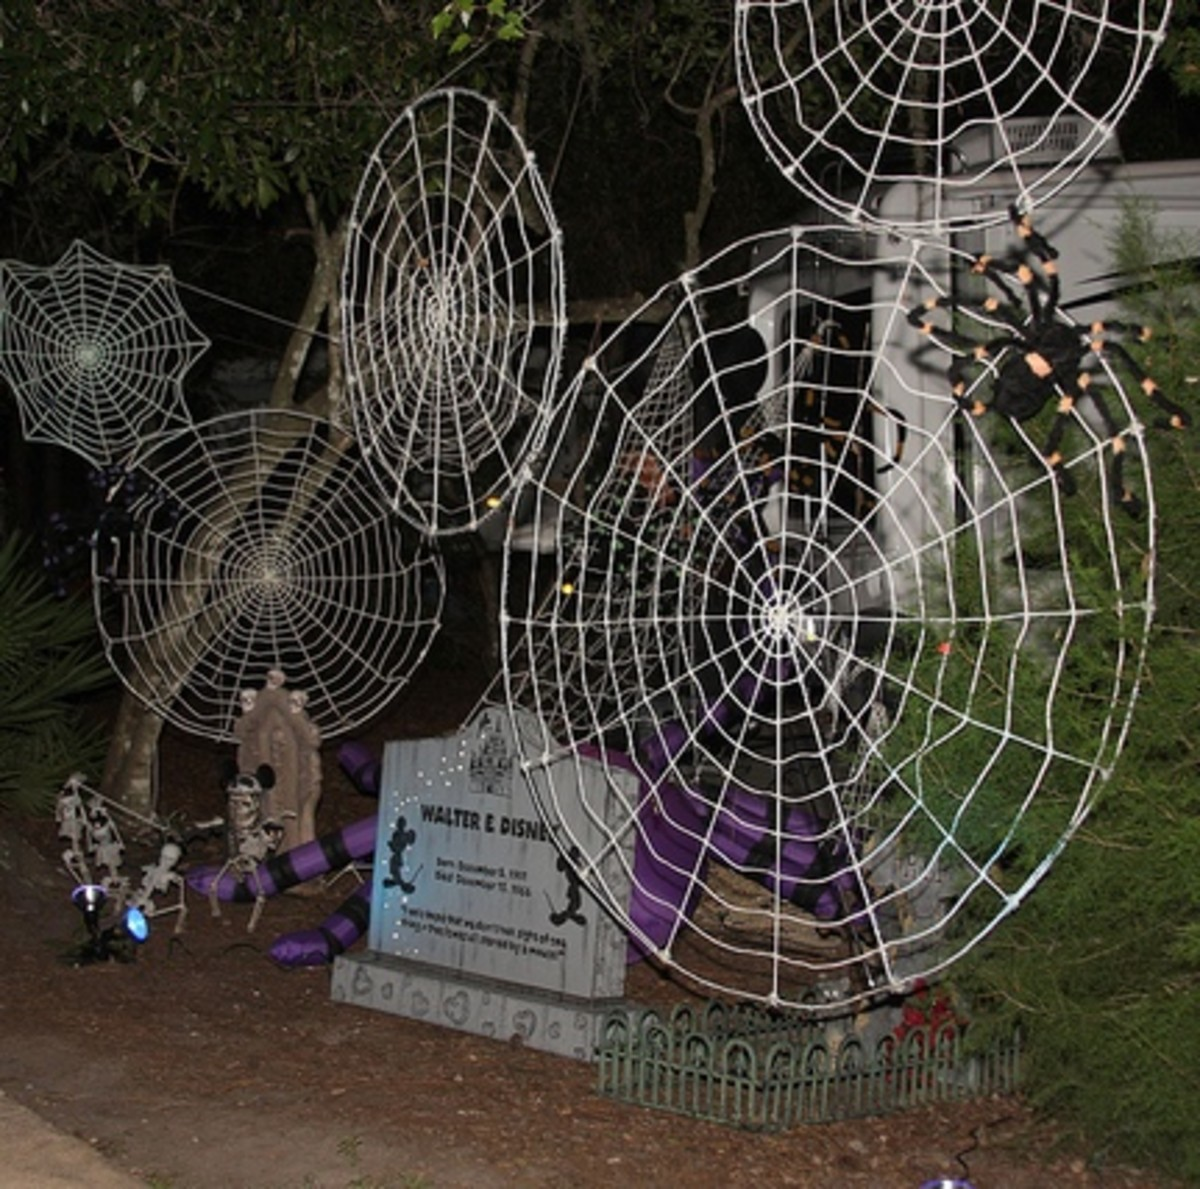 Spiderwebs create a not-too-scary eerie image of your yard at Halloween.